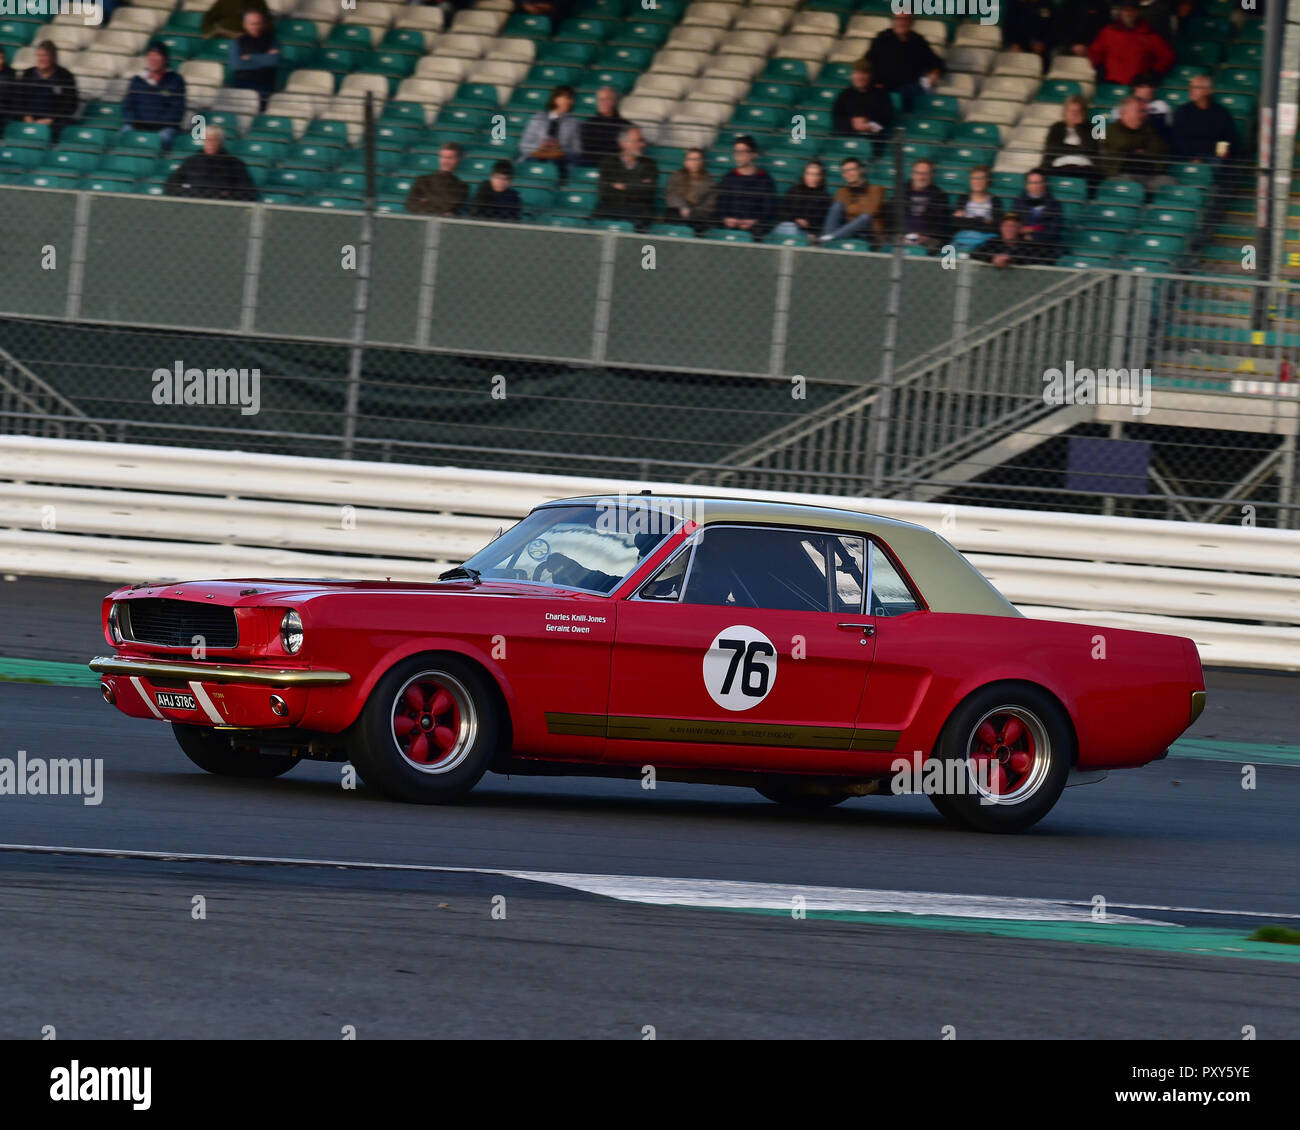 Geraint Owen, Ford Mustang, HSCC, HRSR, Historic Touring Cars, Silverstone Finals Historic Race Meeting, Silverstone, October 2018, cars, Classic Raci - Stock Image